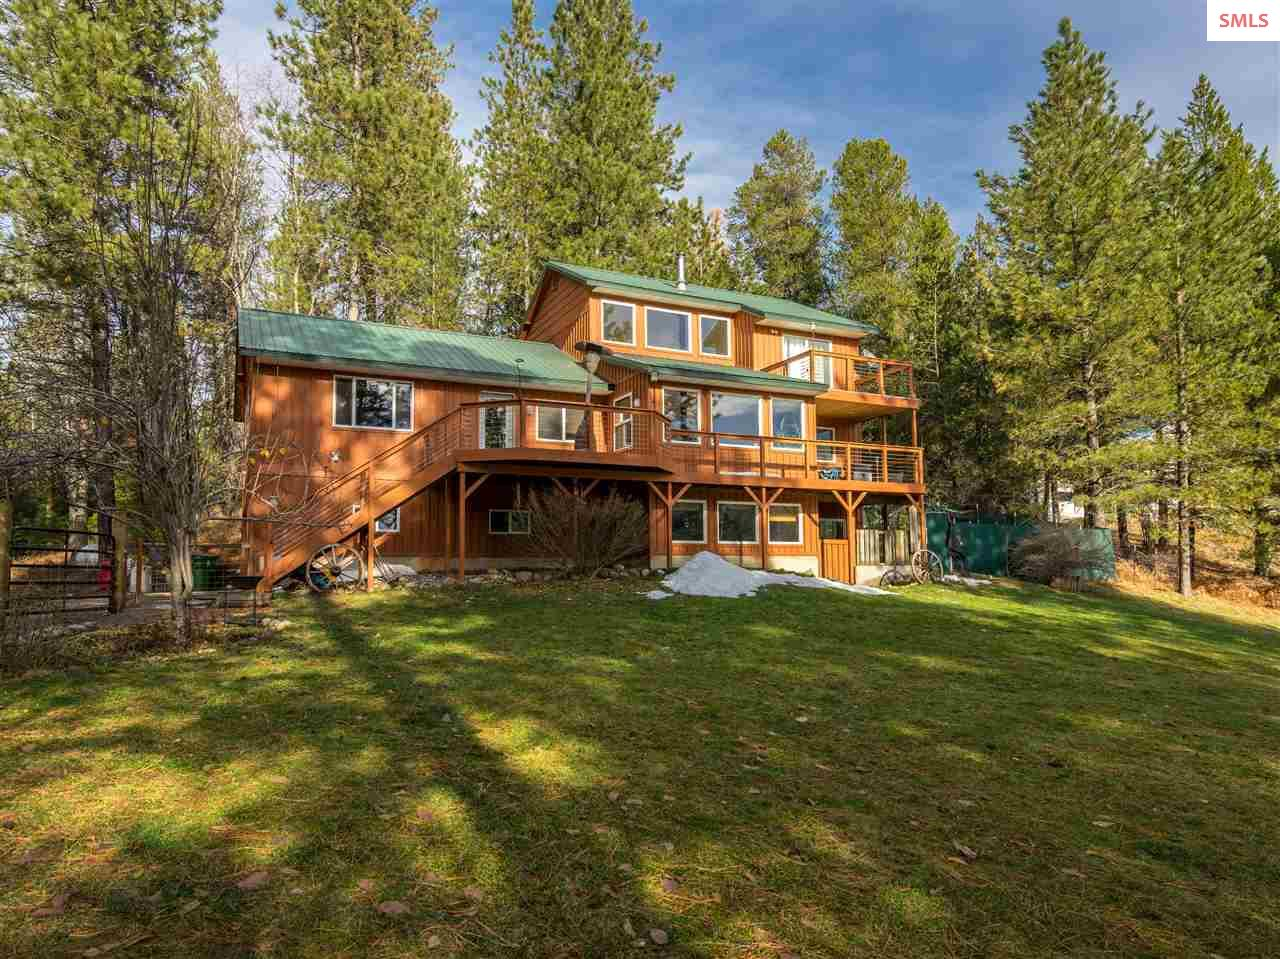 Single Family Home for Sale at 480 Cocolalla Loop 480 Cocolalla Loop Cocolalla, Idaho 83813 United States